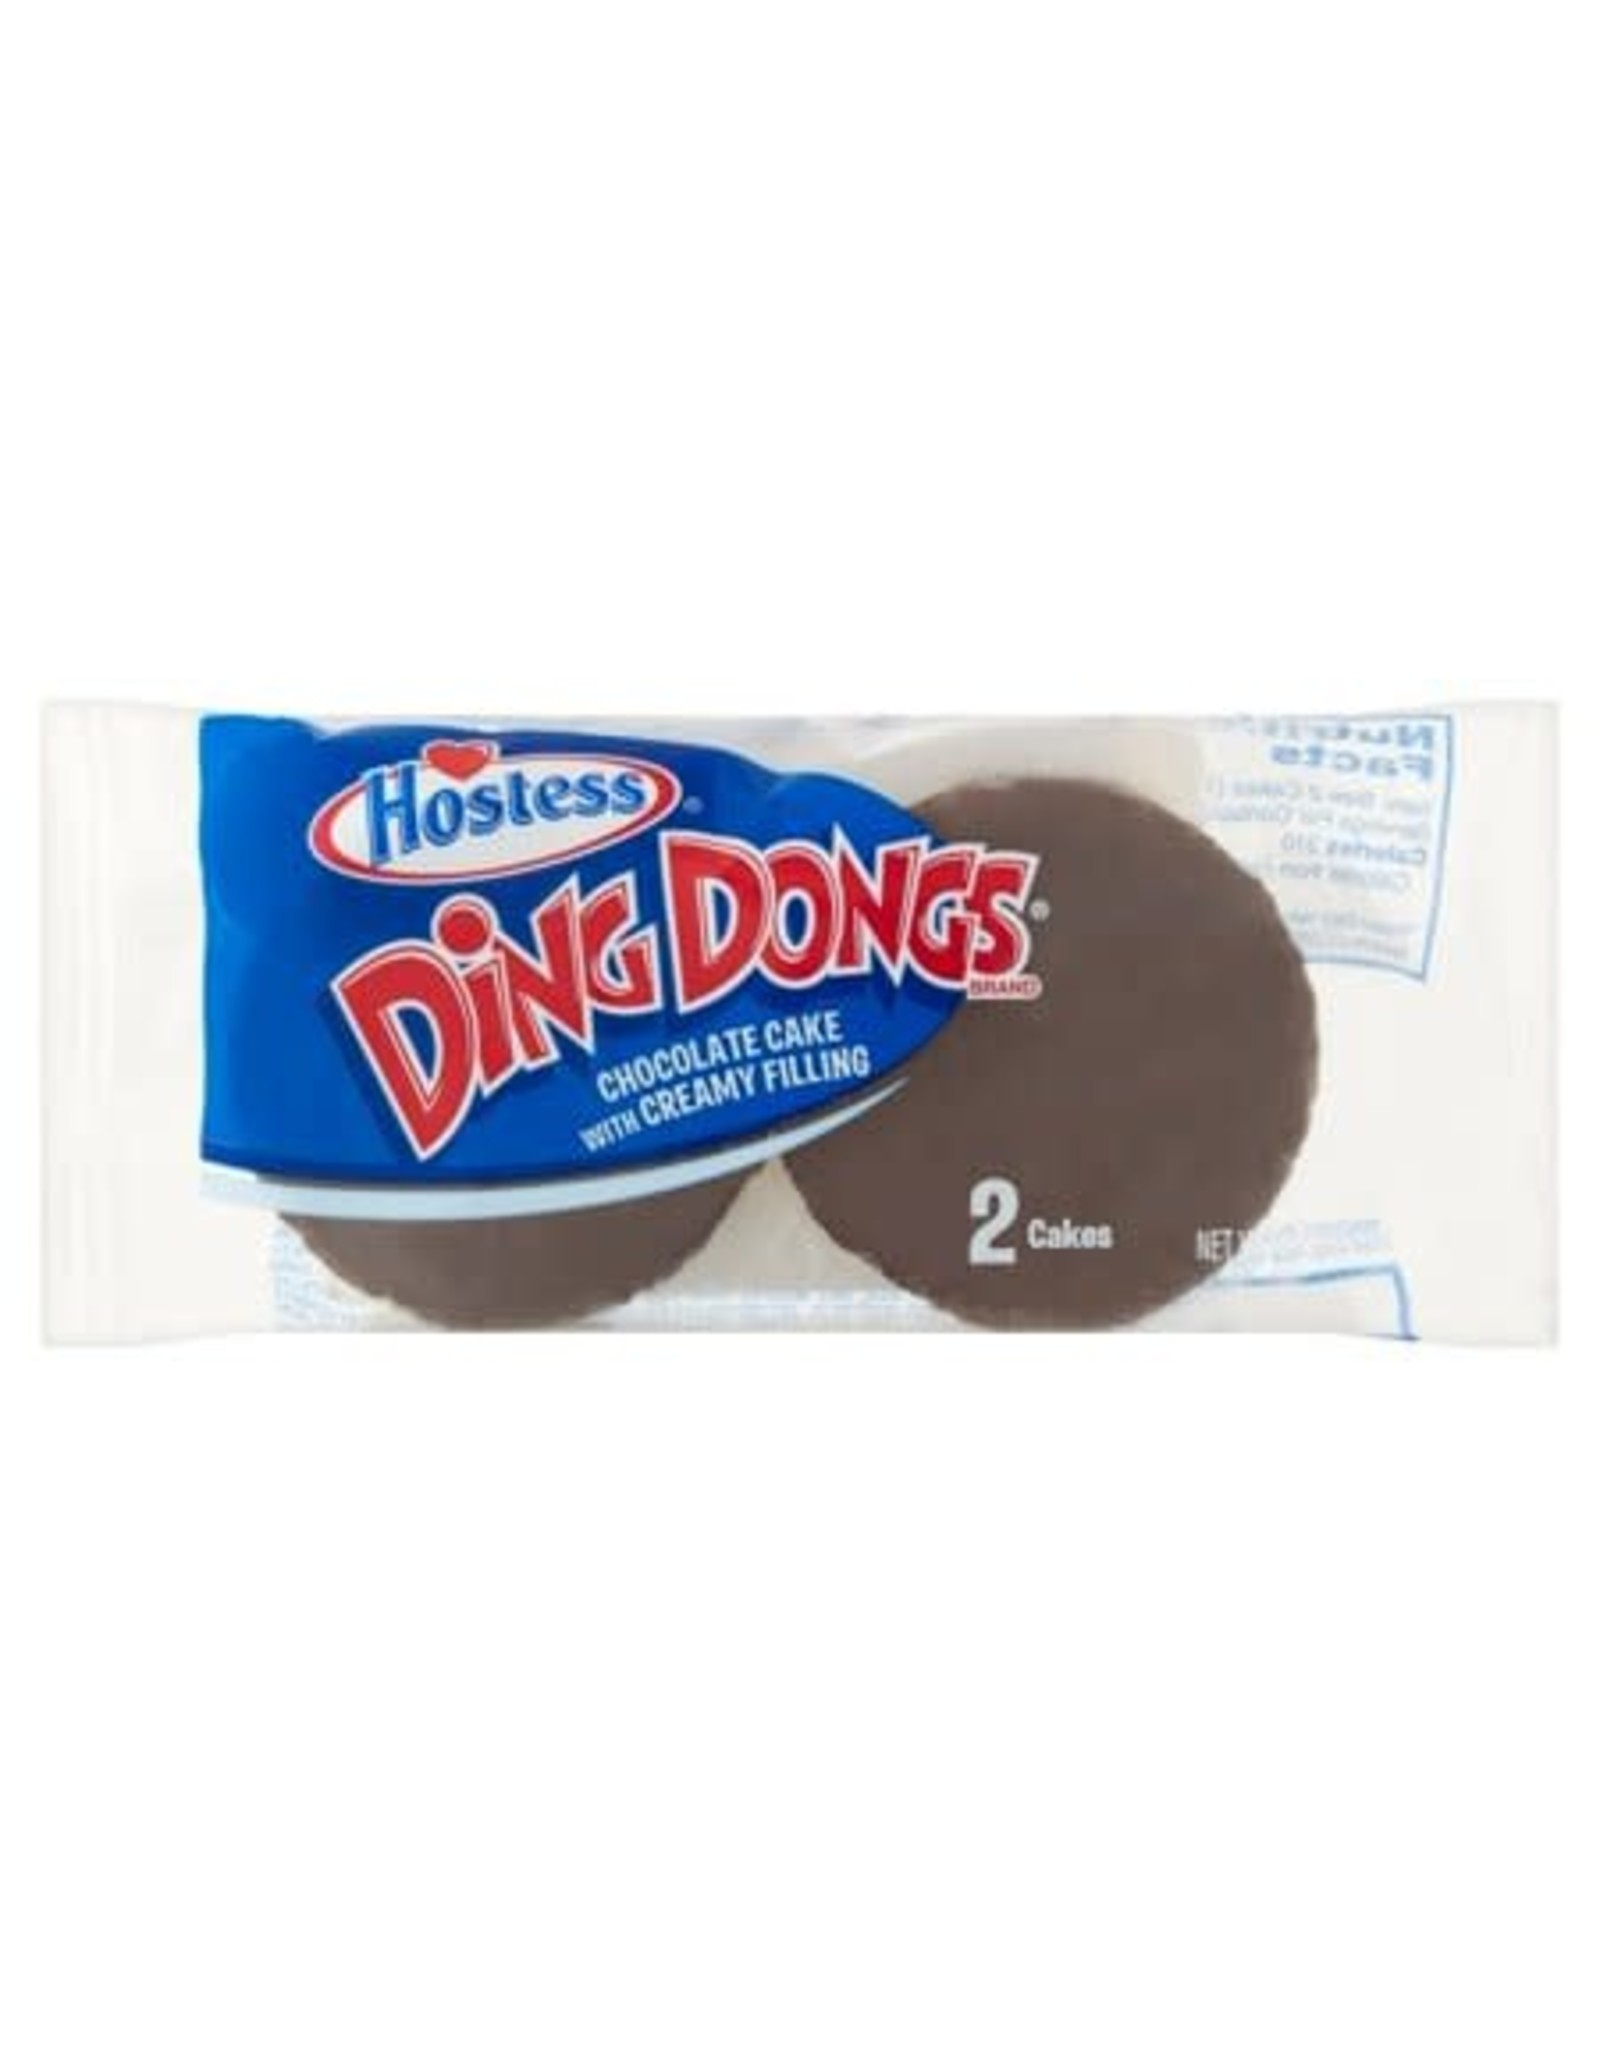 Hostess DING DONGS